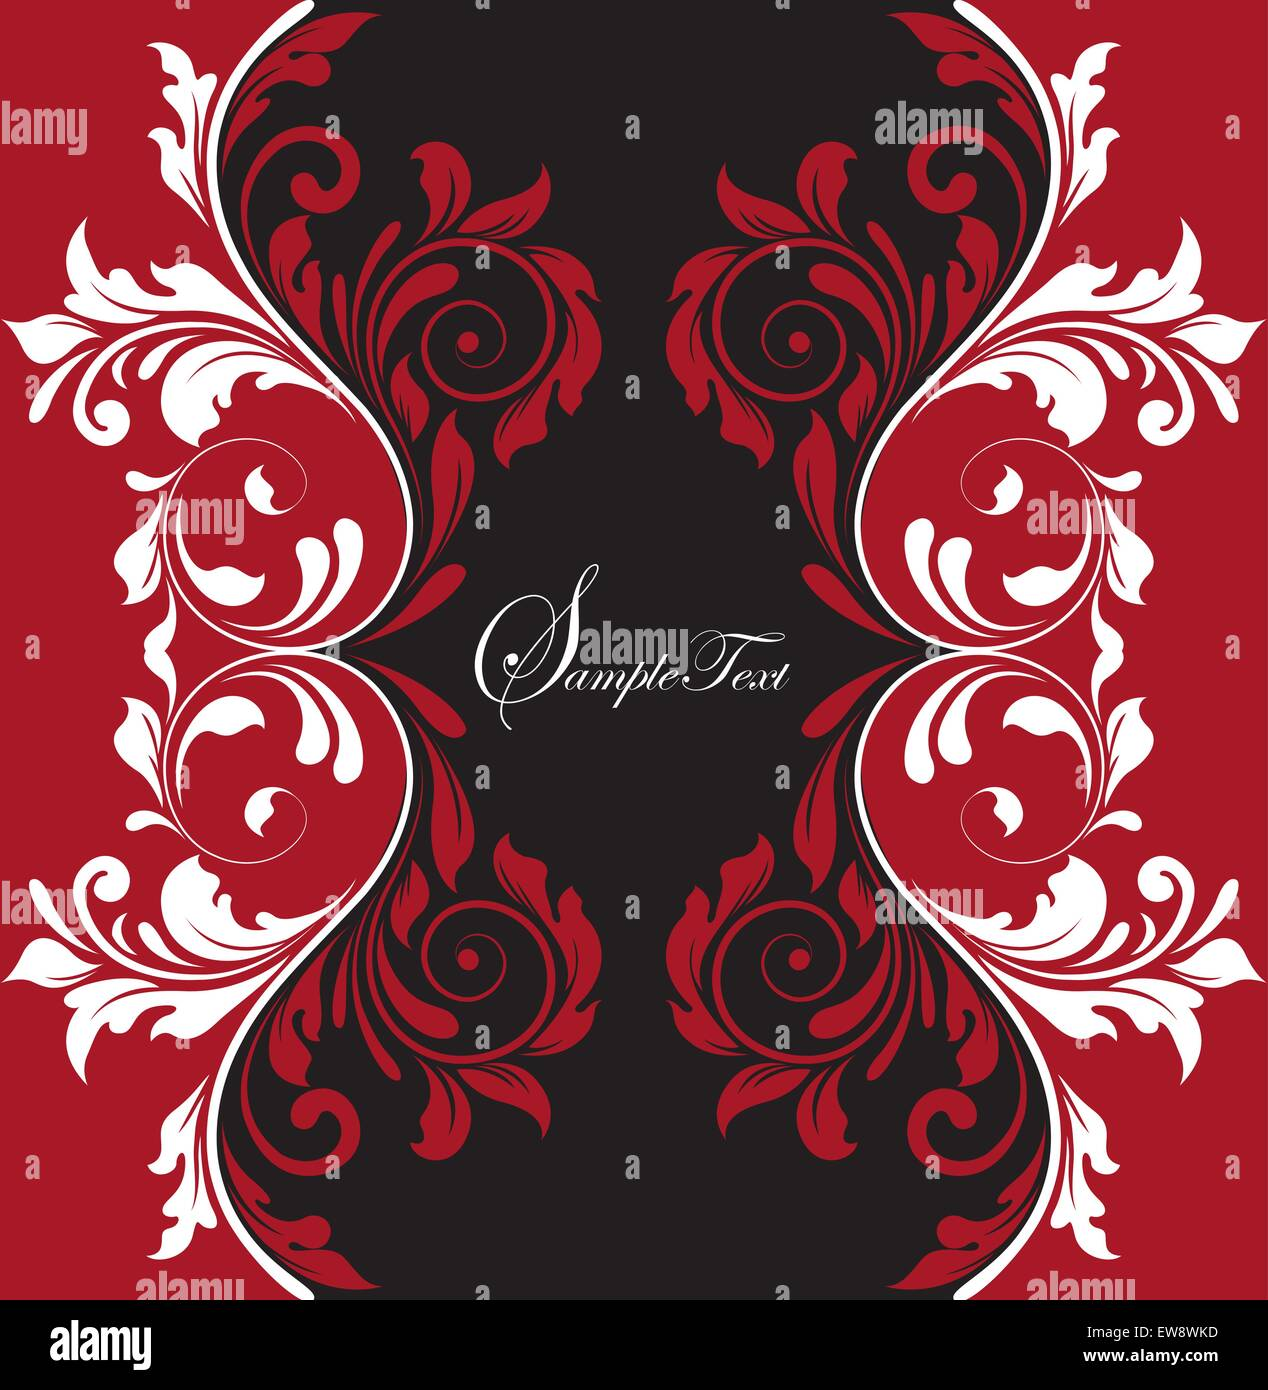 Vintage Background With Ornate Elegant Abstract Floral Design Red Black And White Vector Illustration